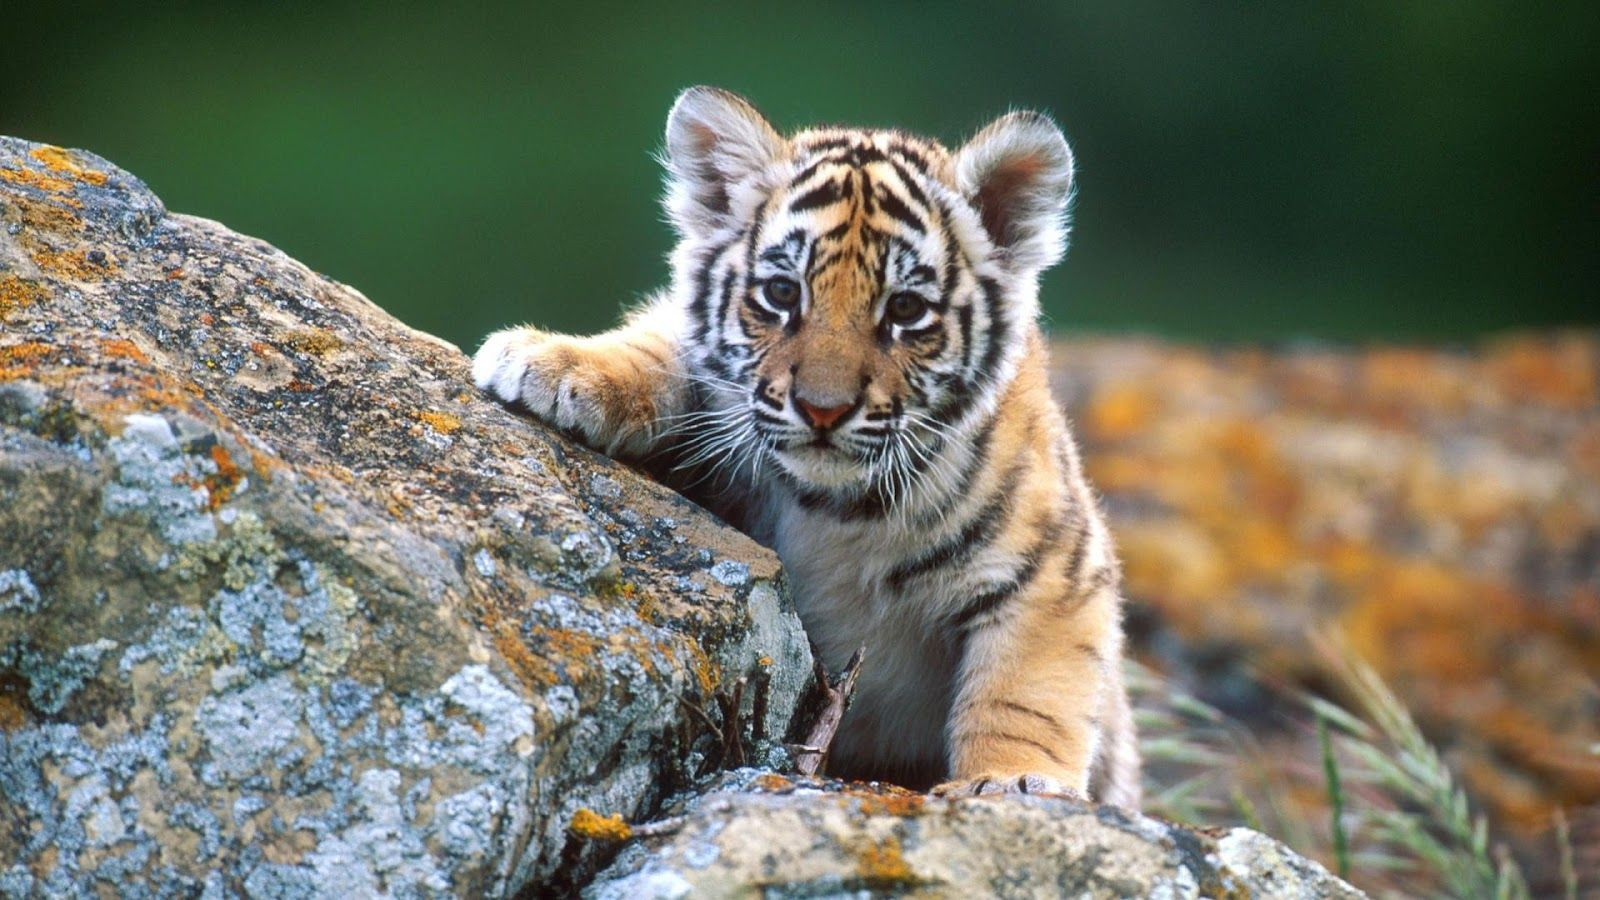 Cute Baby Animal Desktop Wallpapers High Definition Baby Animals Pictures Cute Wild Animals Wild Animal Wallpaper